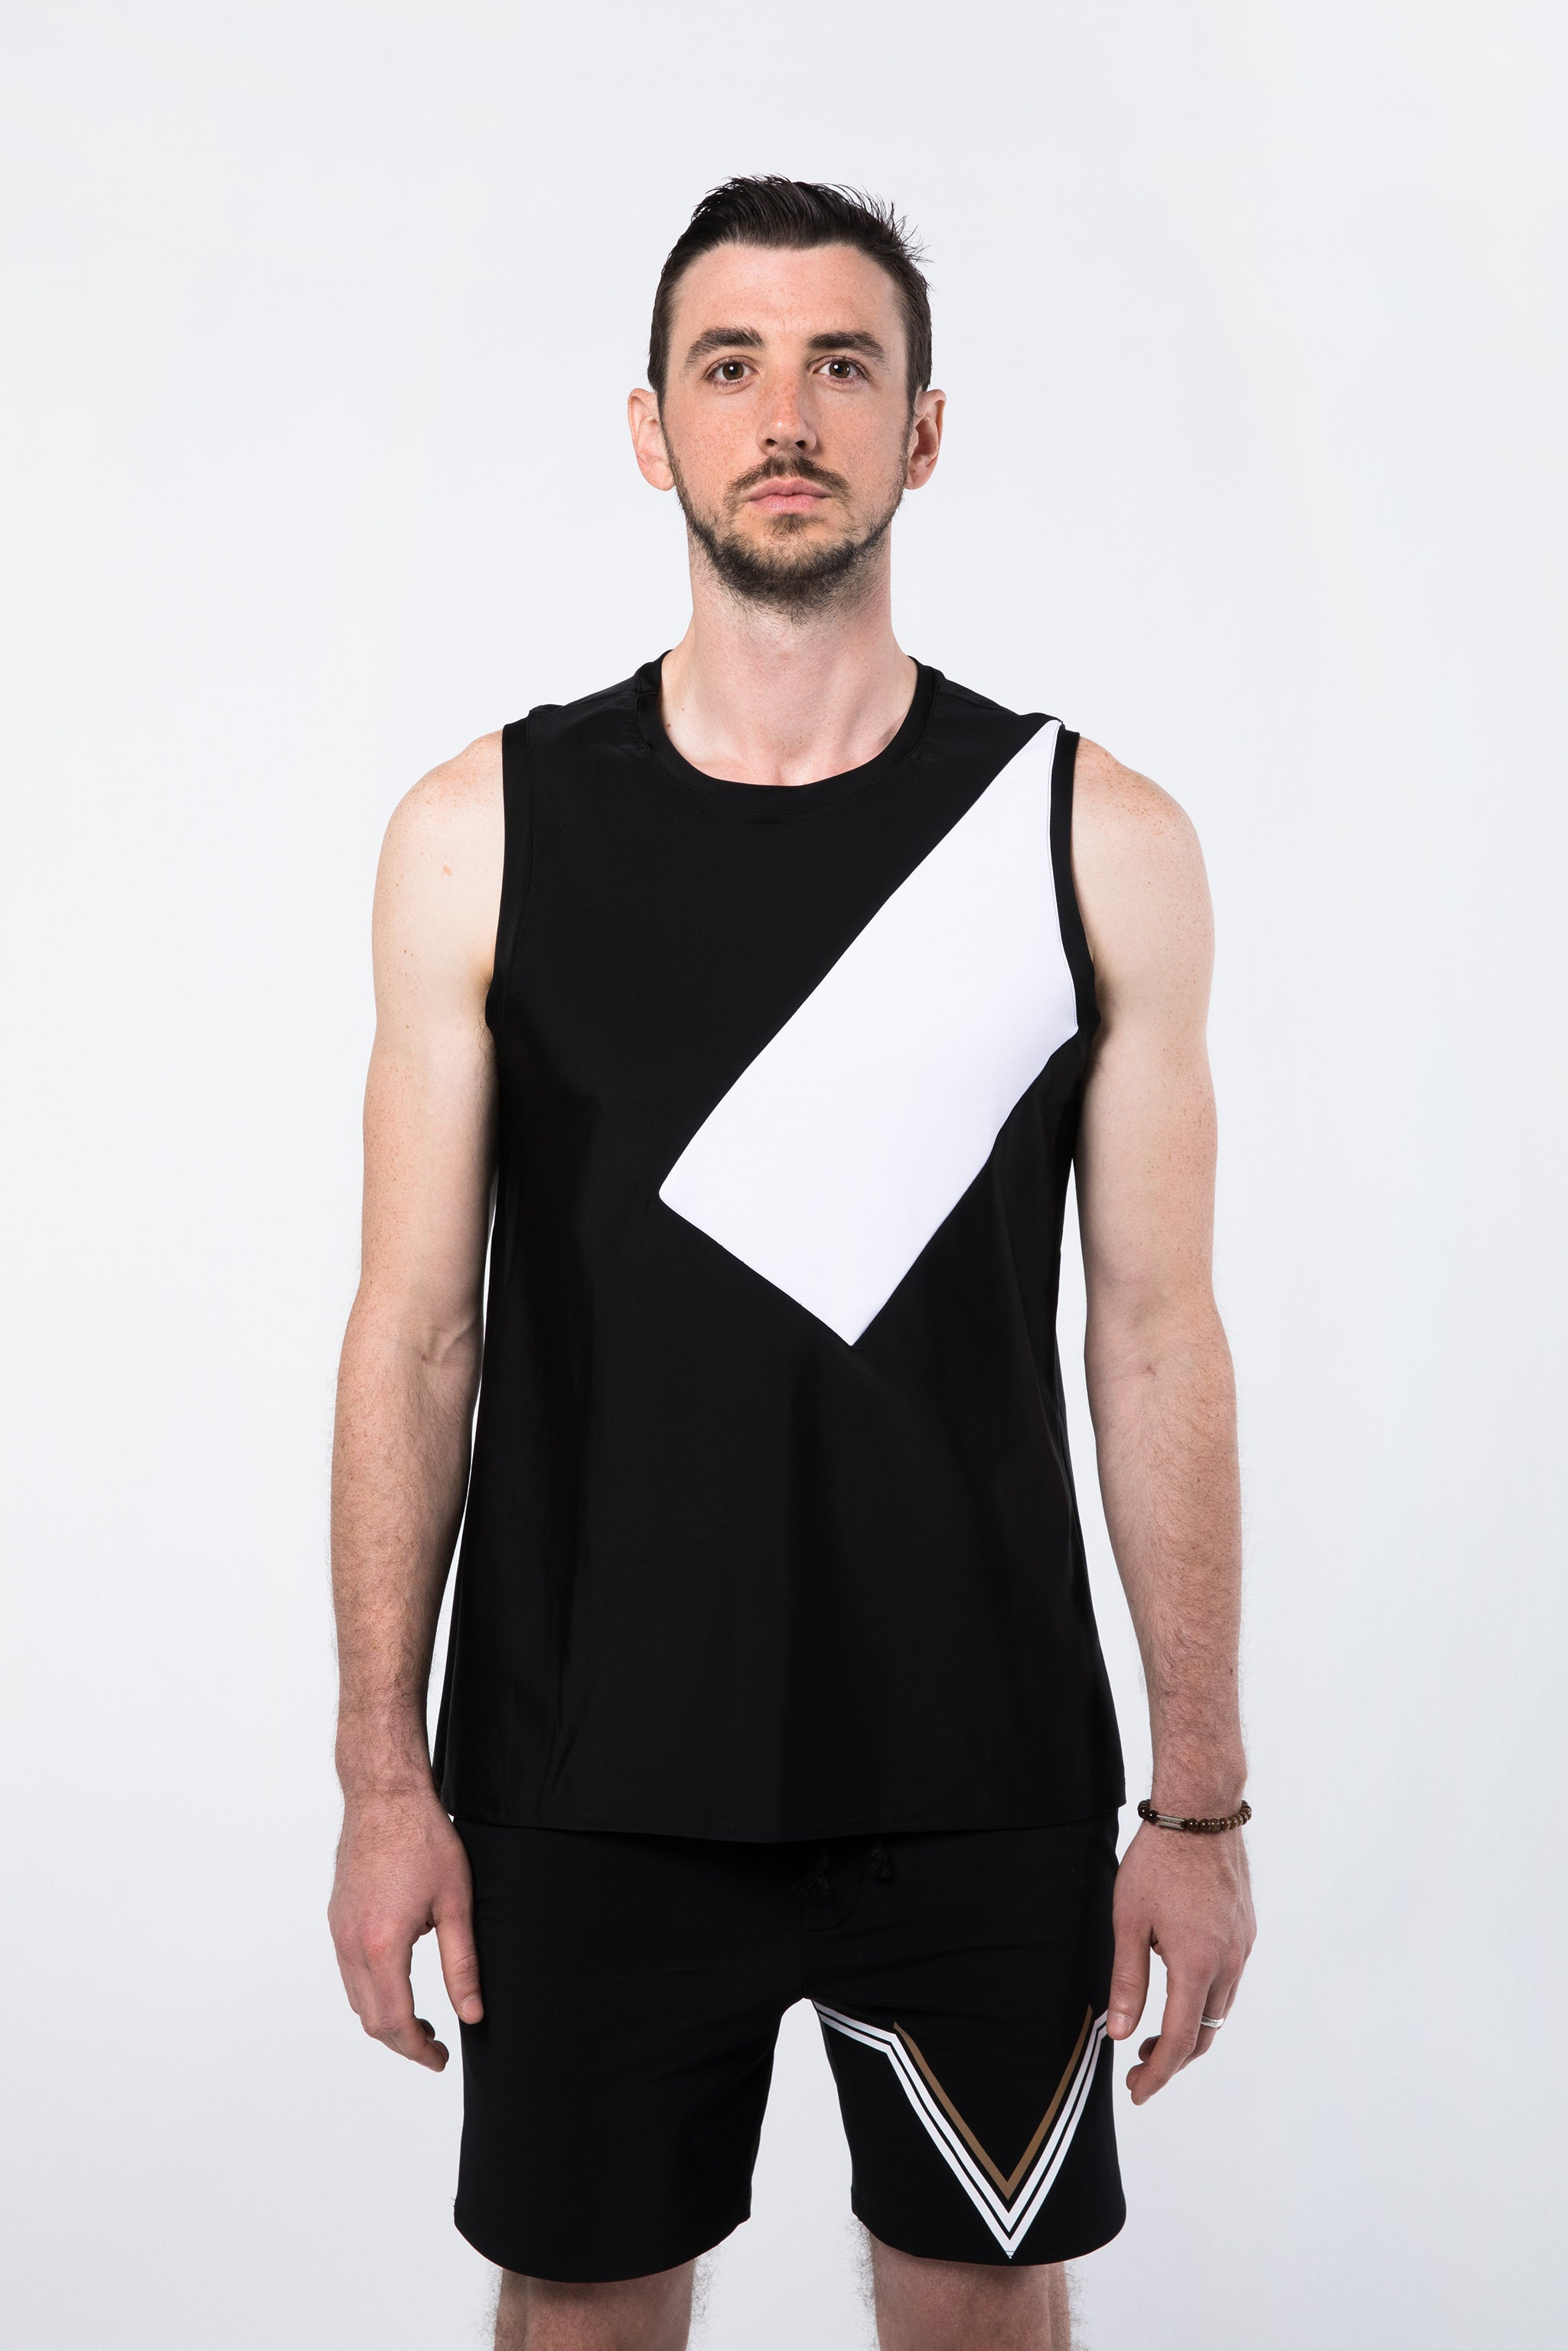 Man Standing in Black and White Yoga Shirt